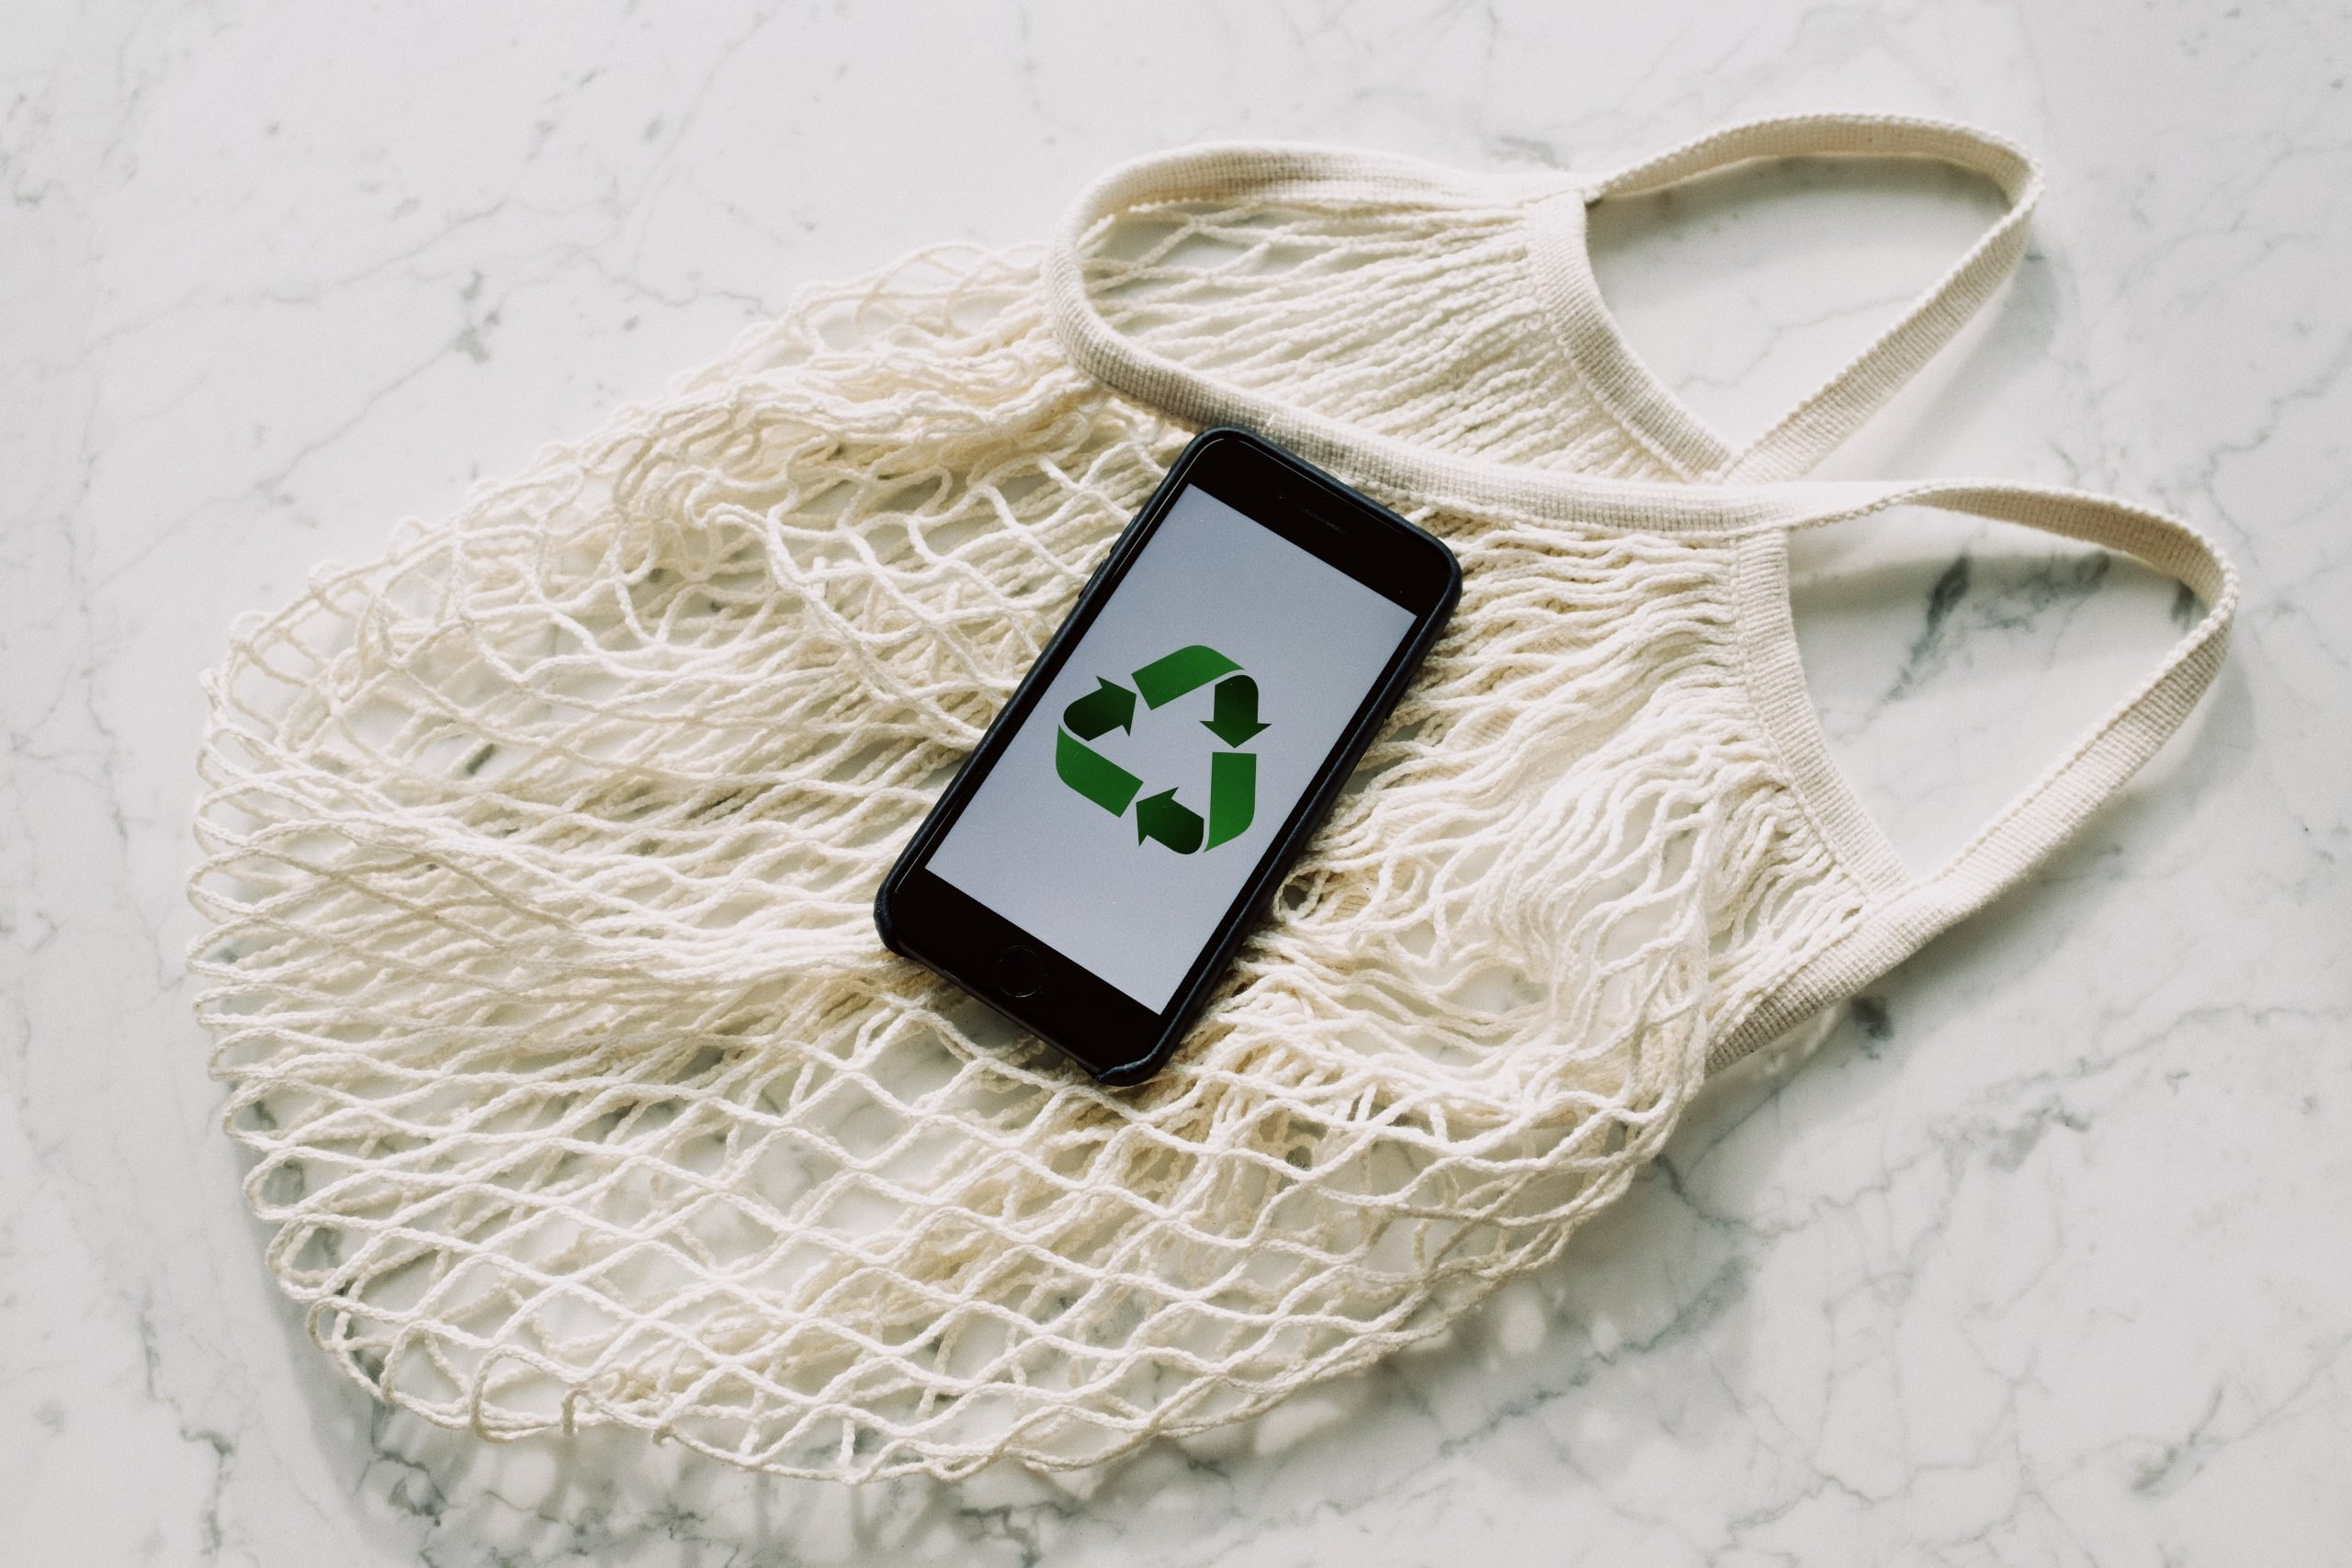 Changing the narrative around recycling